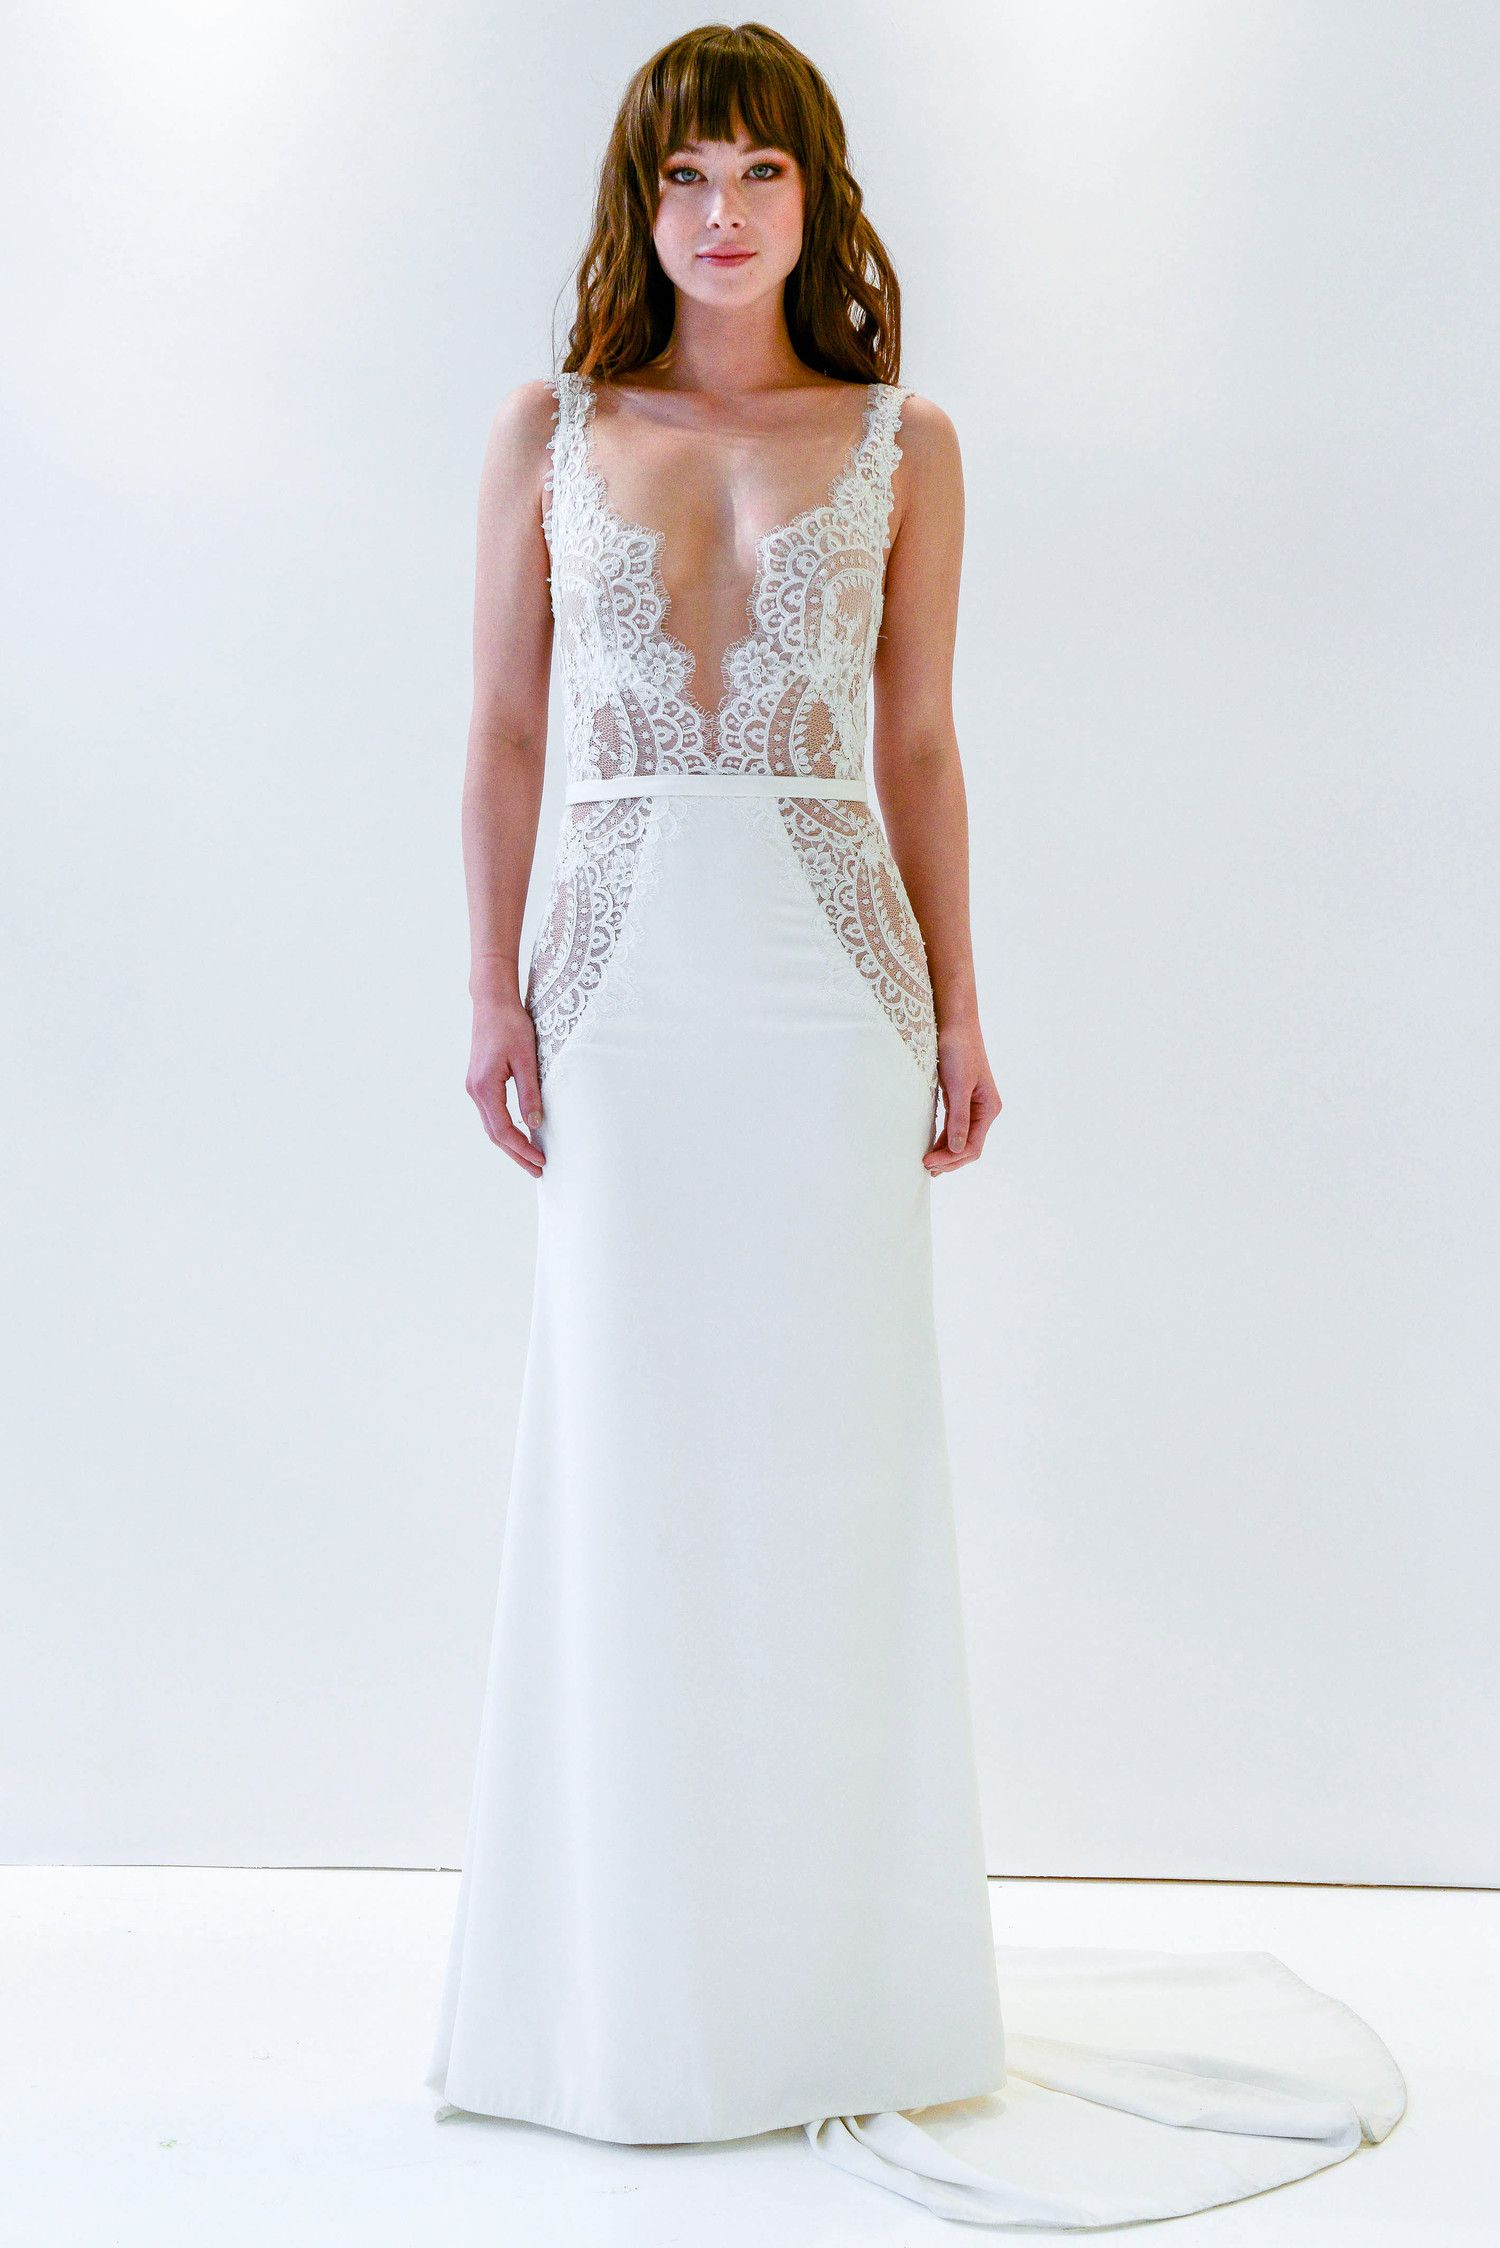 Turn Heads With Wedding Dresses From Watters Spring 2015 Bridal Collection recommend